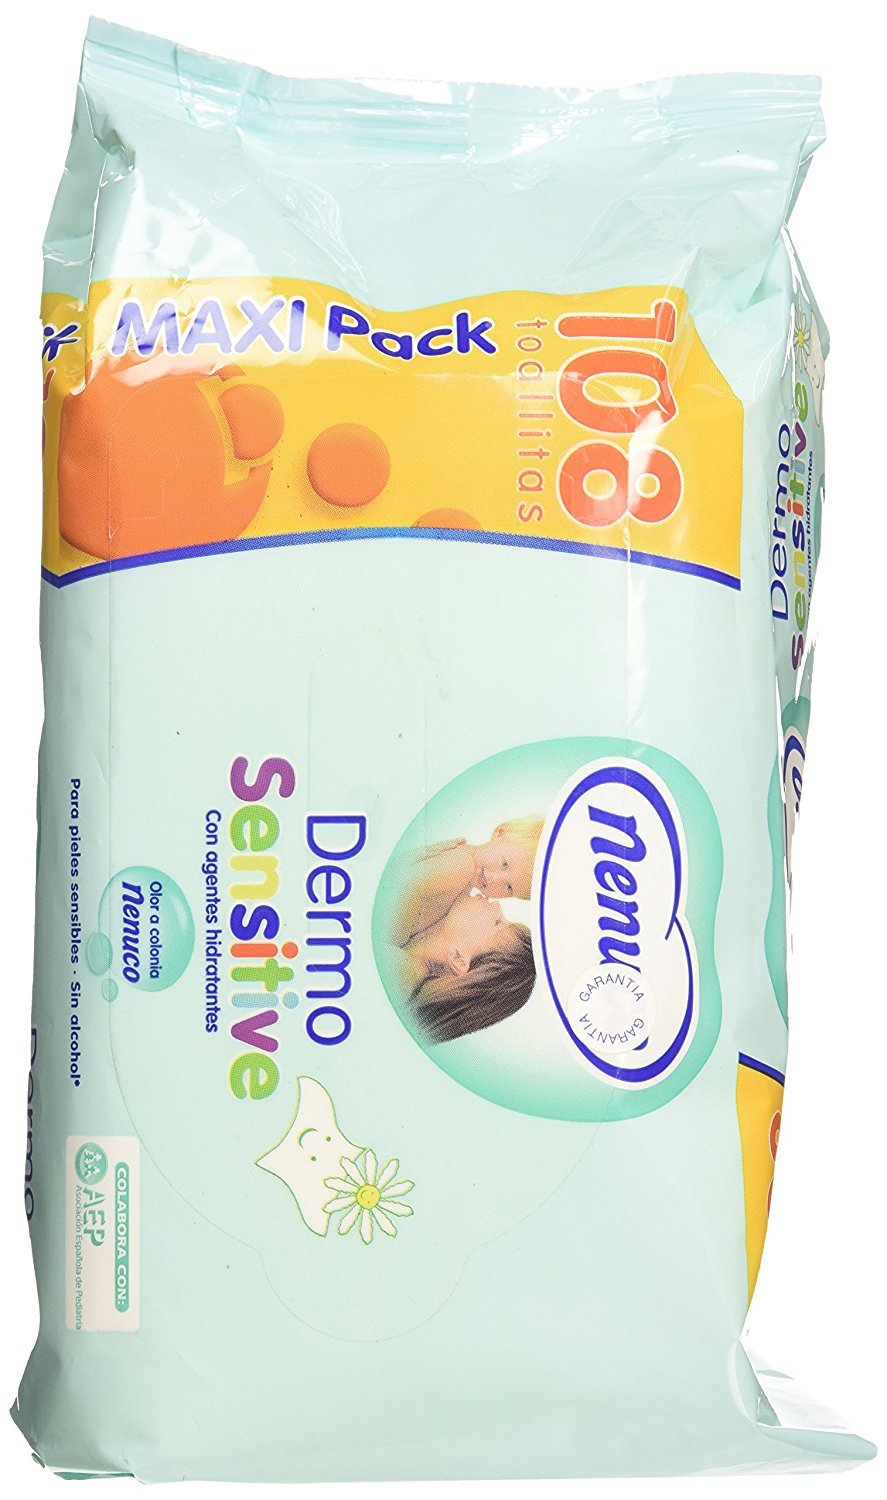 Nenuco Toallitas Dermosensitive para pieles sensibles - 108 unidades: Amazon.es: Amazon Pantry